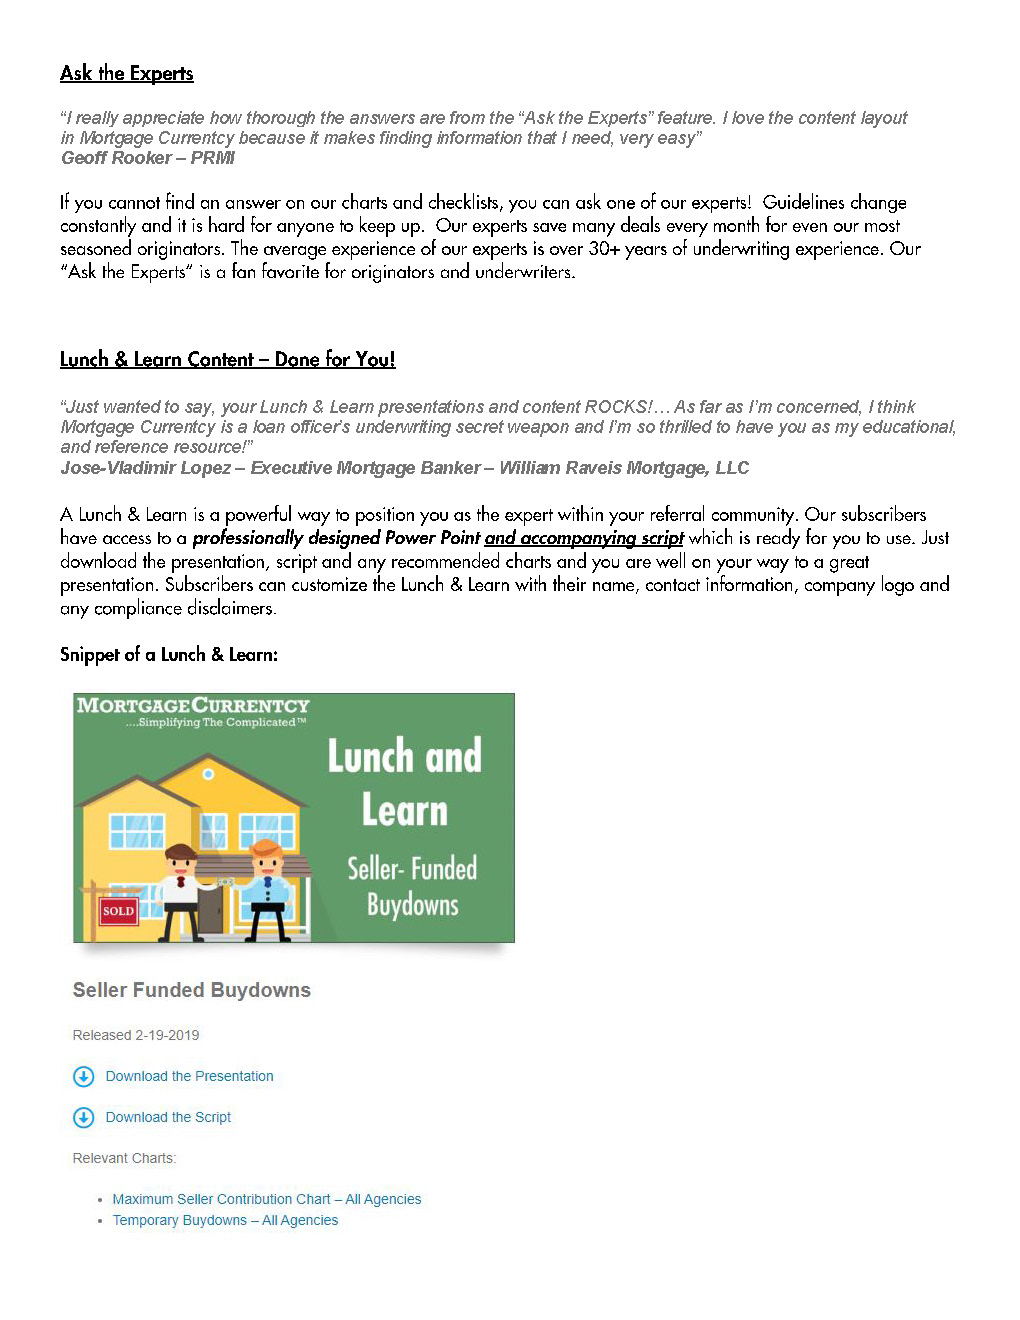 Mortgage Currentcy Overview Page 2